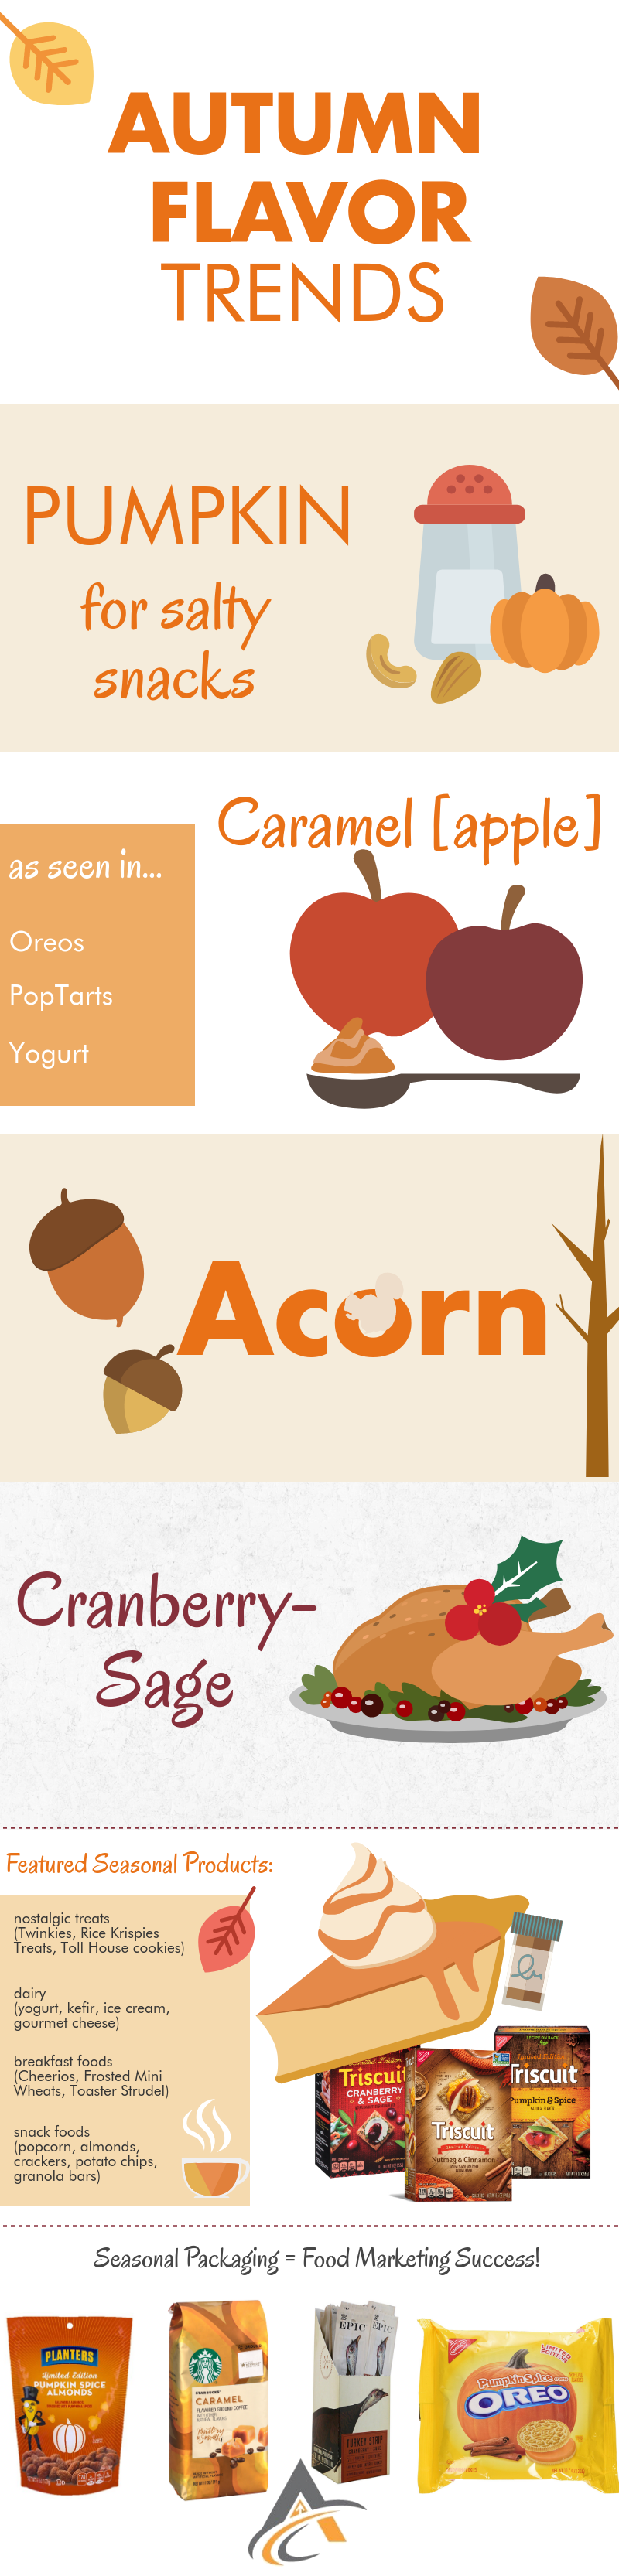 fall-flavor-trends-infographic